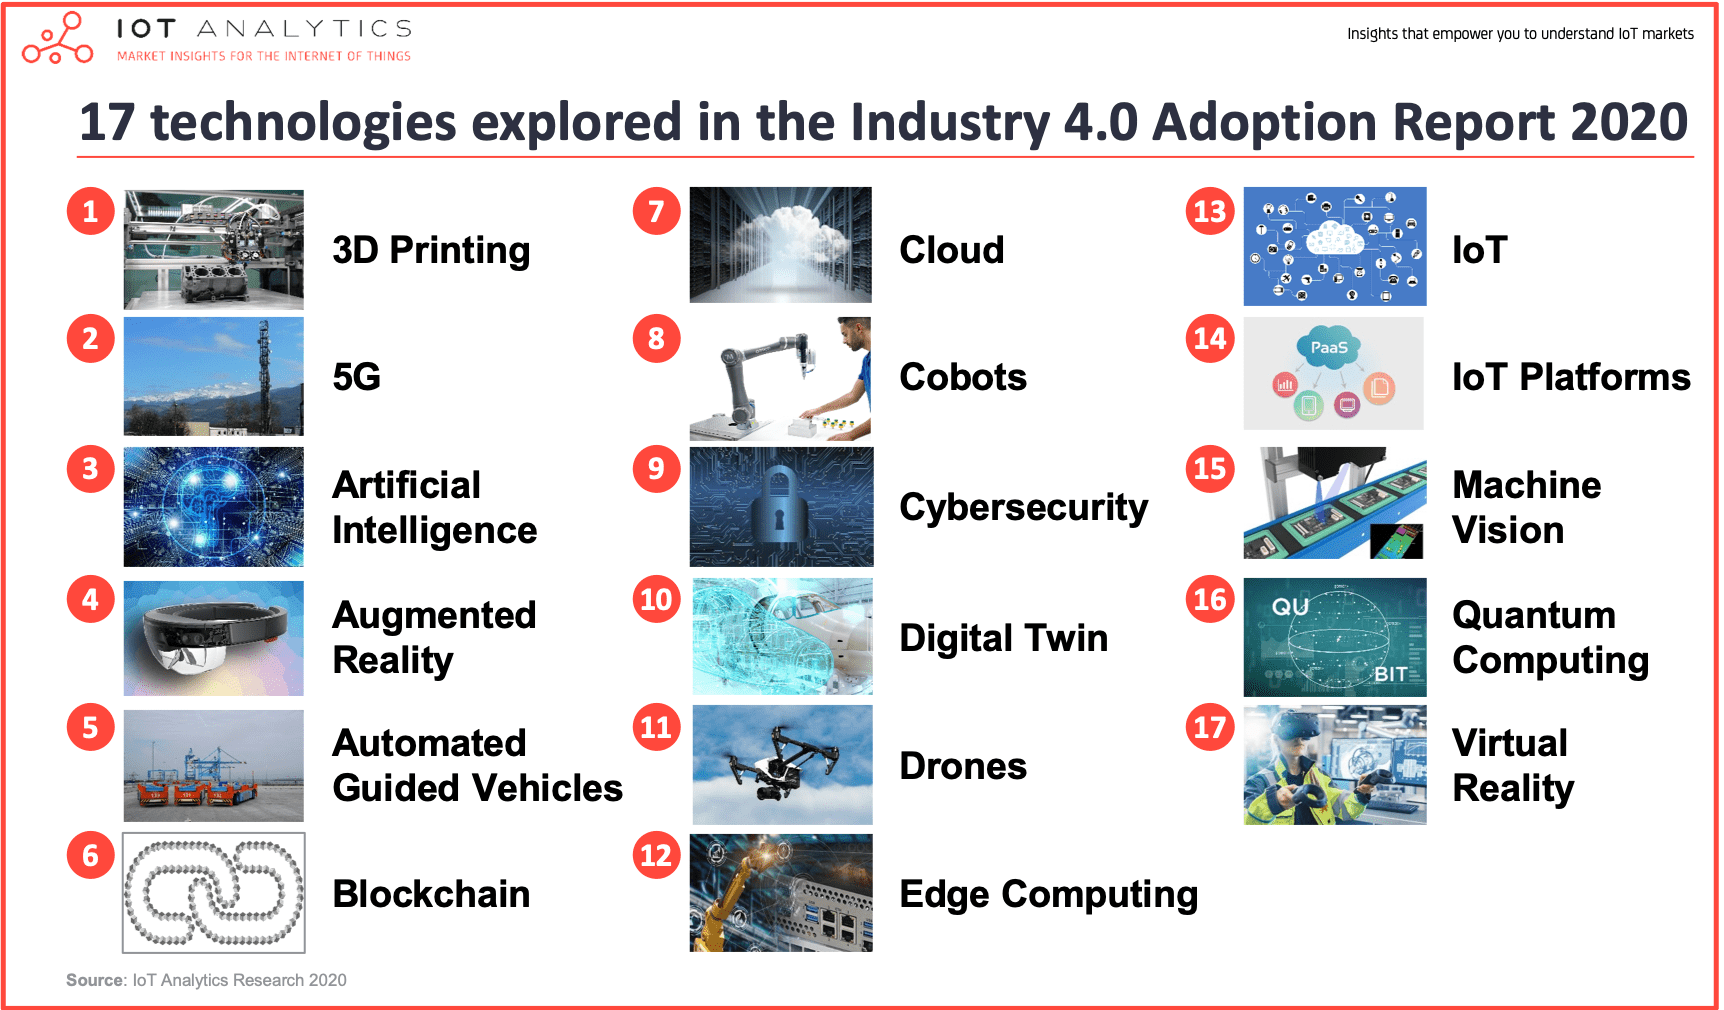 17 technologies explored in the Industry 4.0 Adoption Report 2020